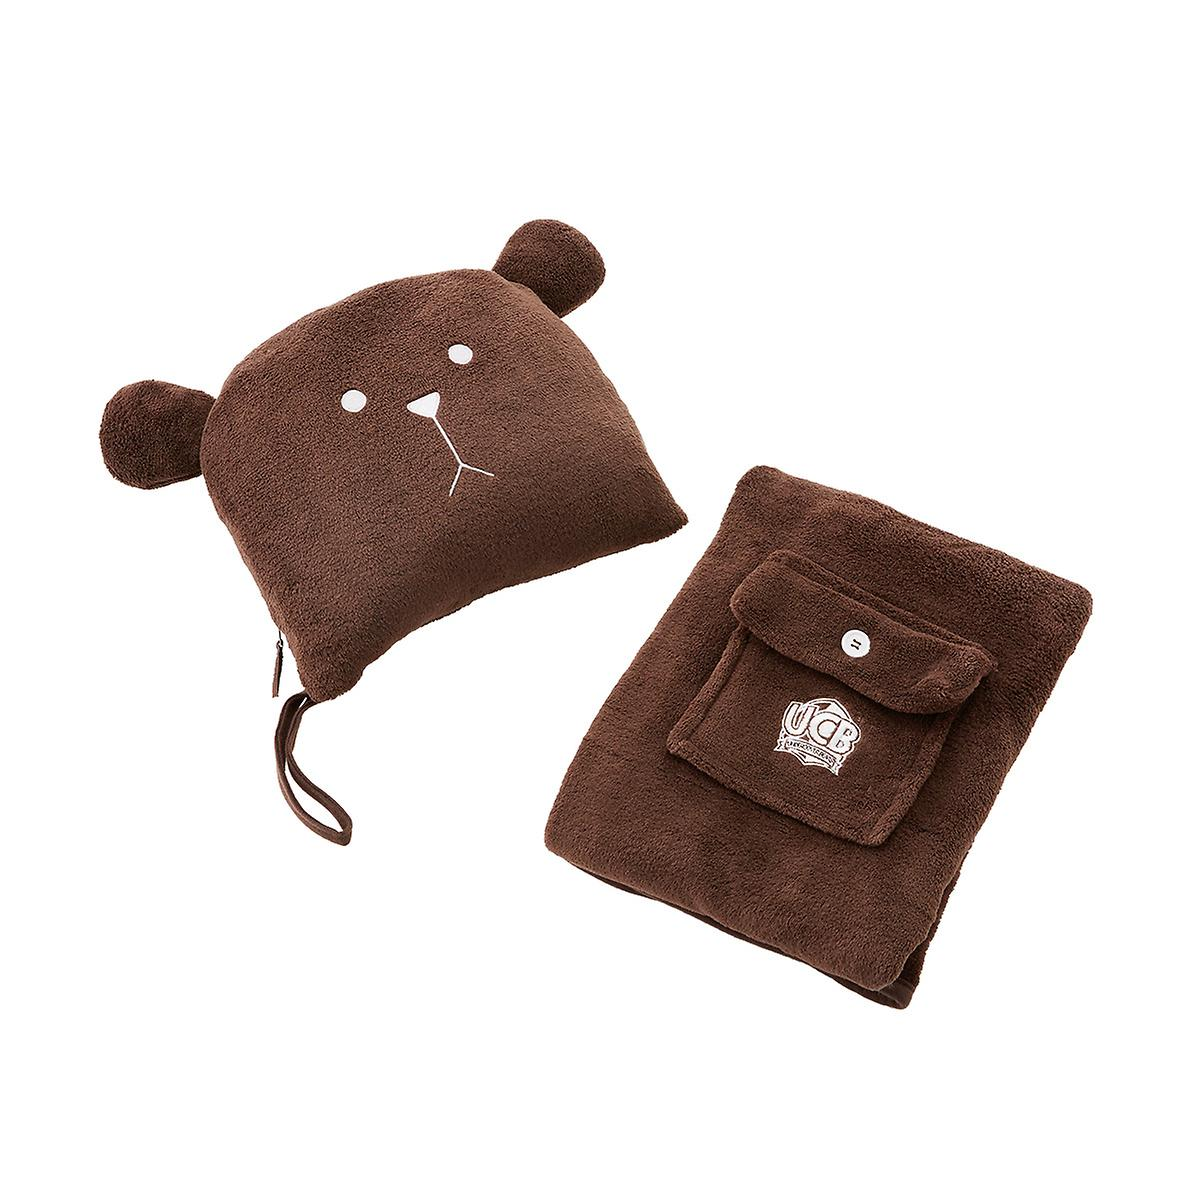 Lug Undercover Bear Travel Pillow & Blanket